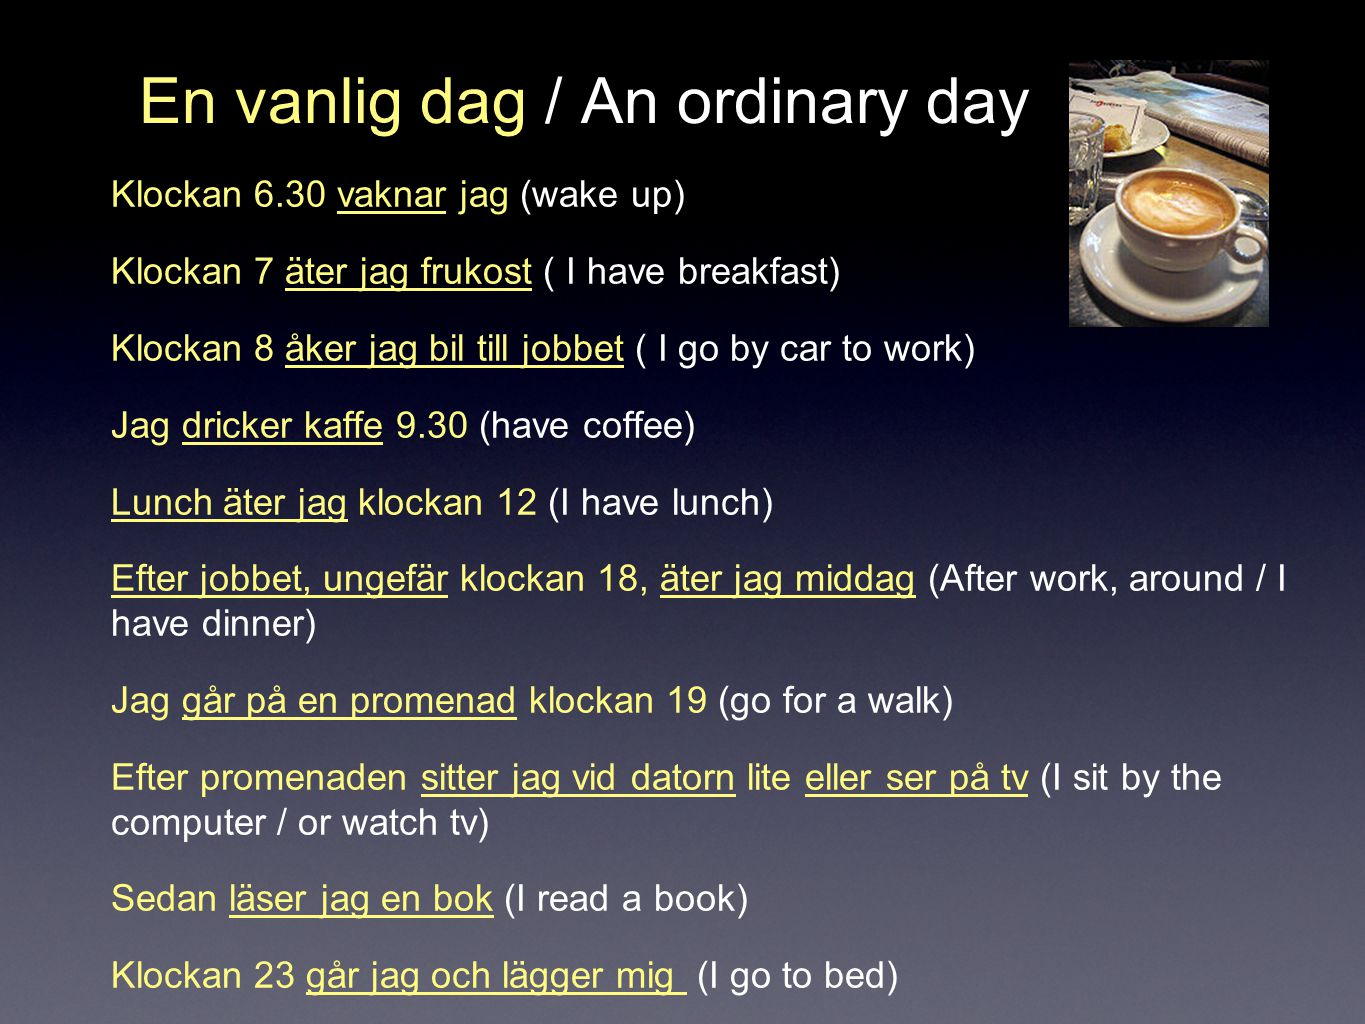 En vanlig dag / An ordinary day